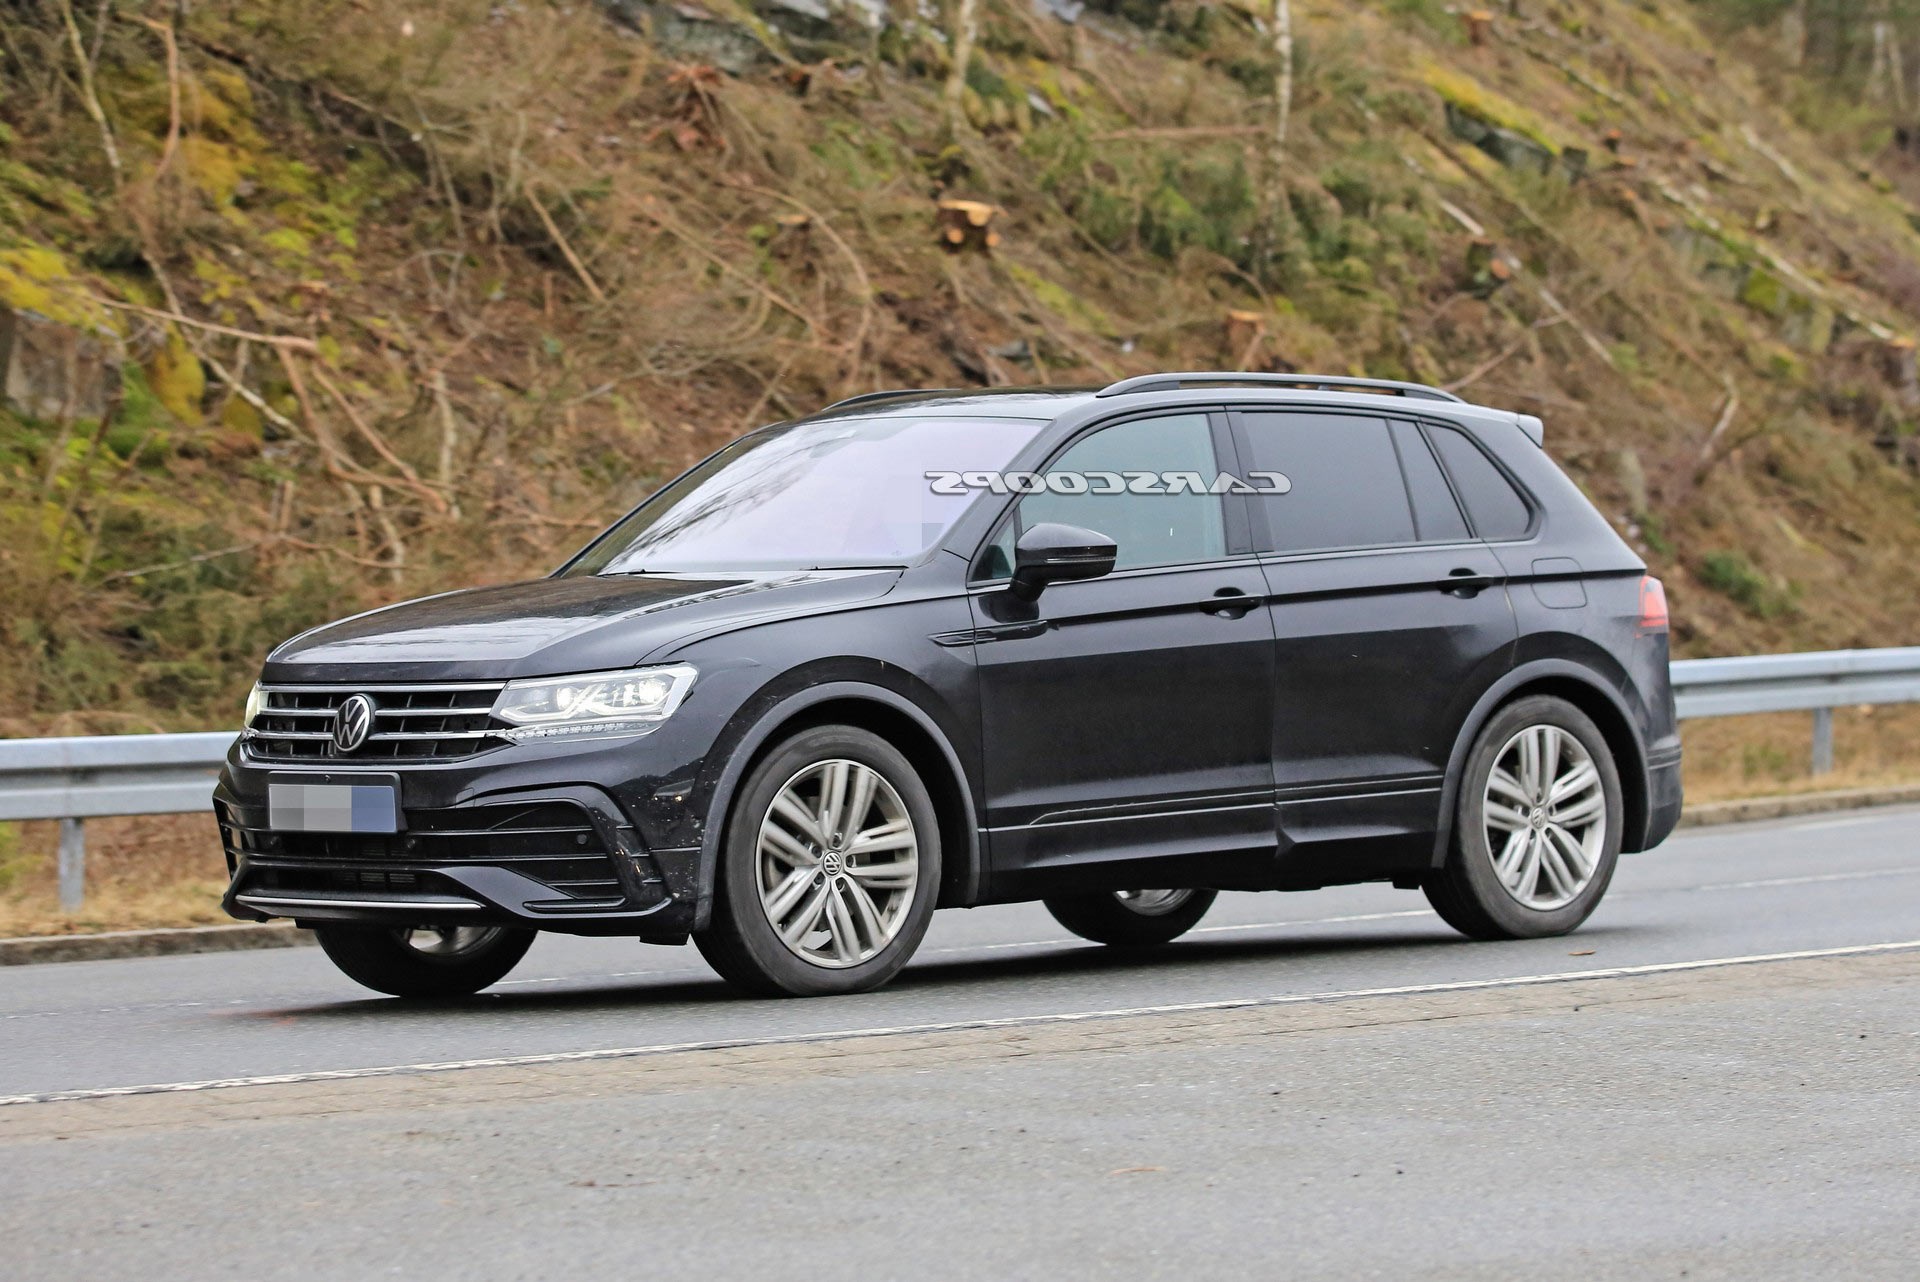 2021 Vw Tiguan Facelift Looks Mighty Athletic In Official